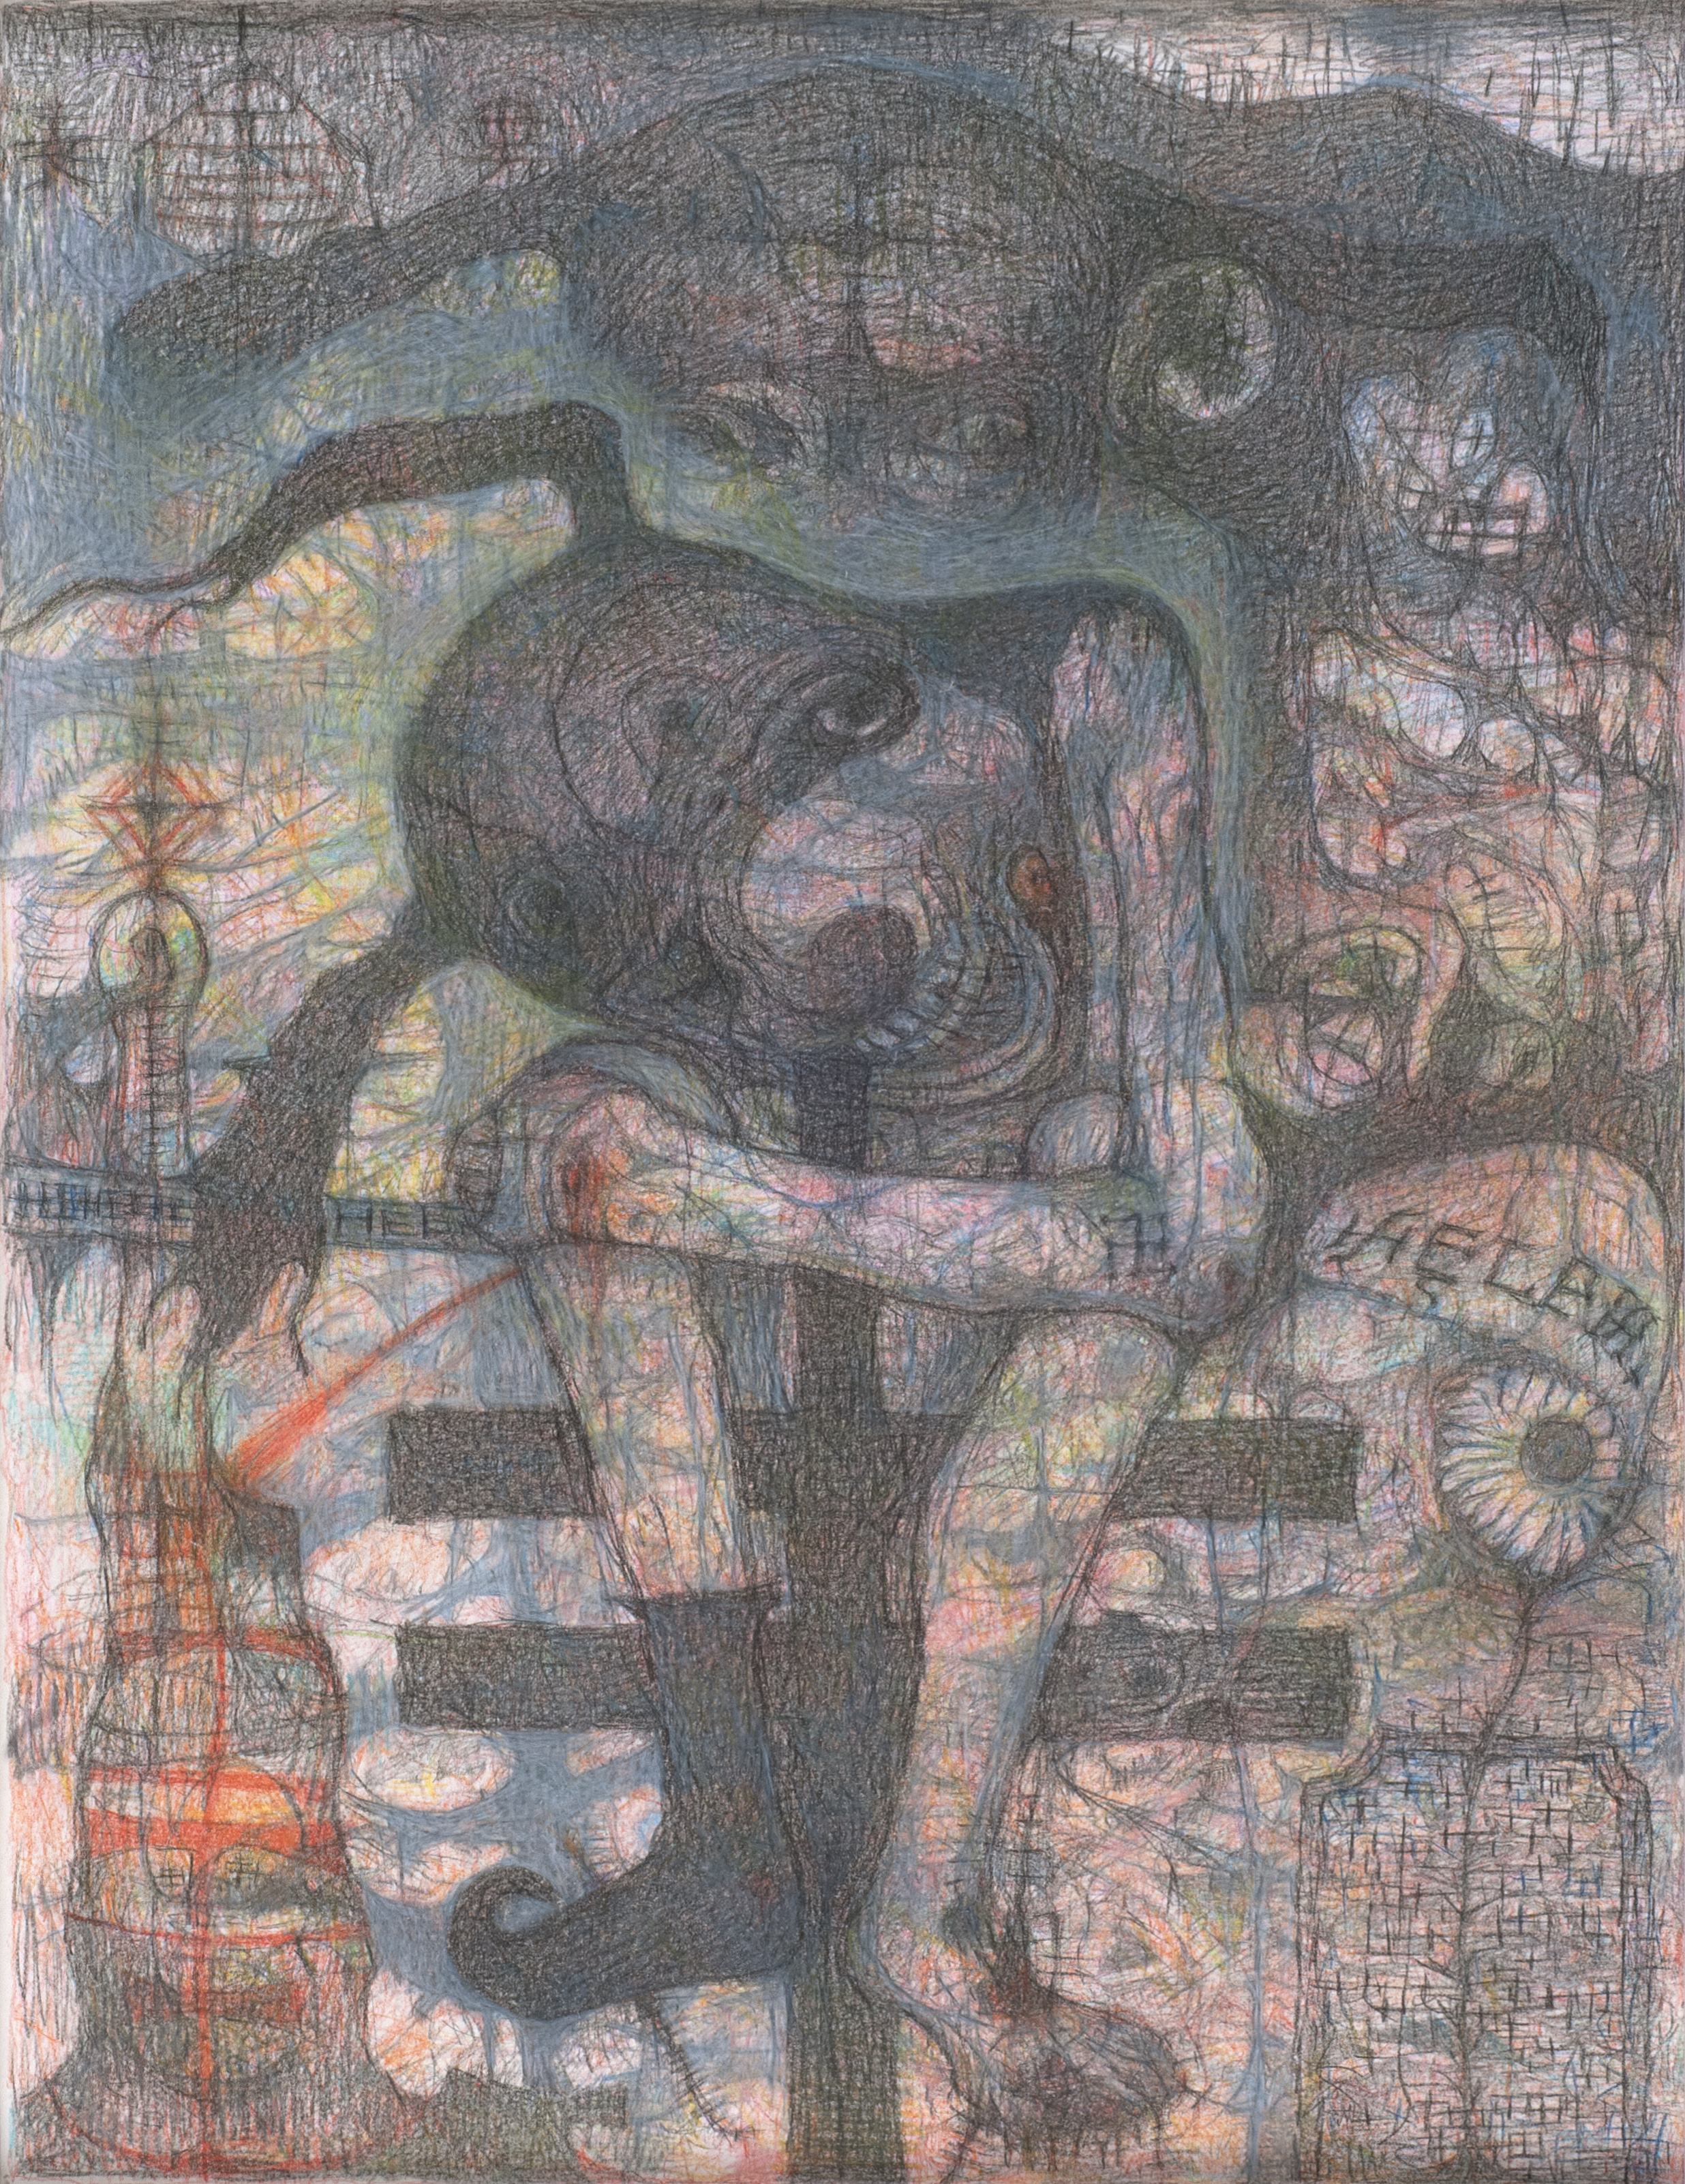 M'onma Untitled, 2013 Colored pencil on paper  /  15.55 x 12.01 inches (39.5 x 30.5 cm)  /  IMo 48